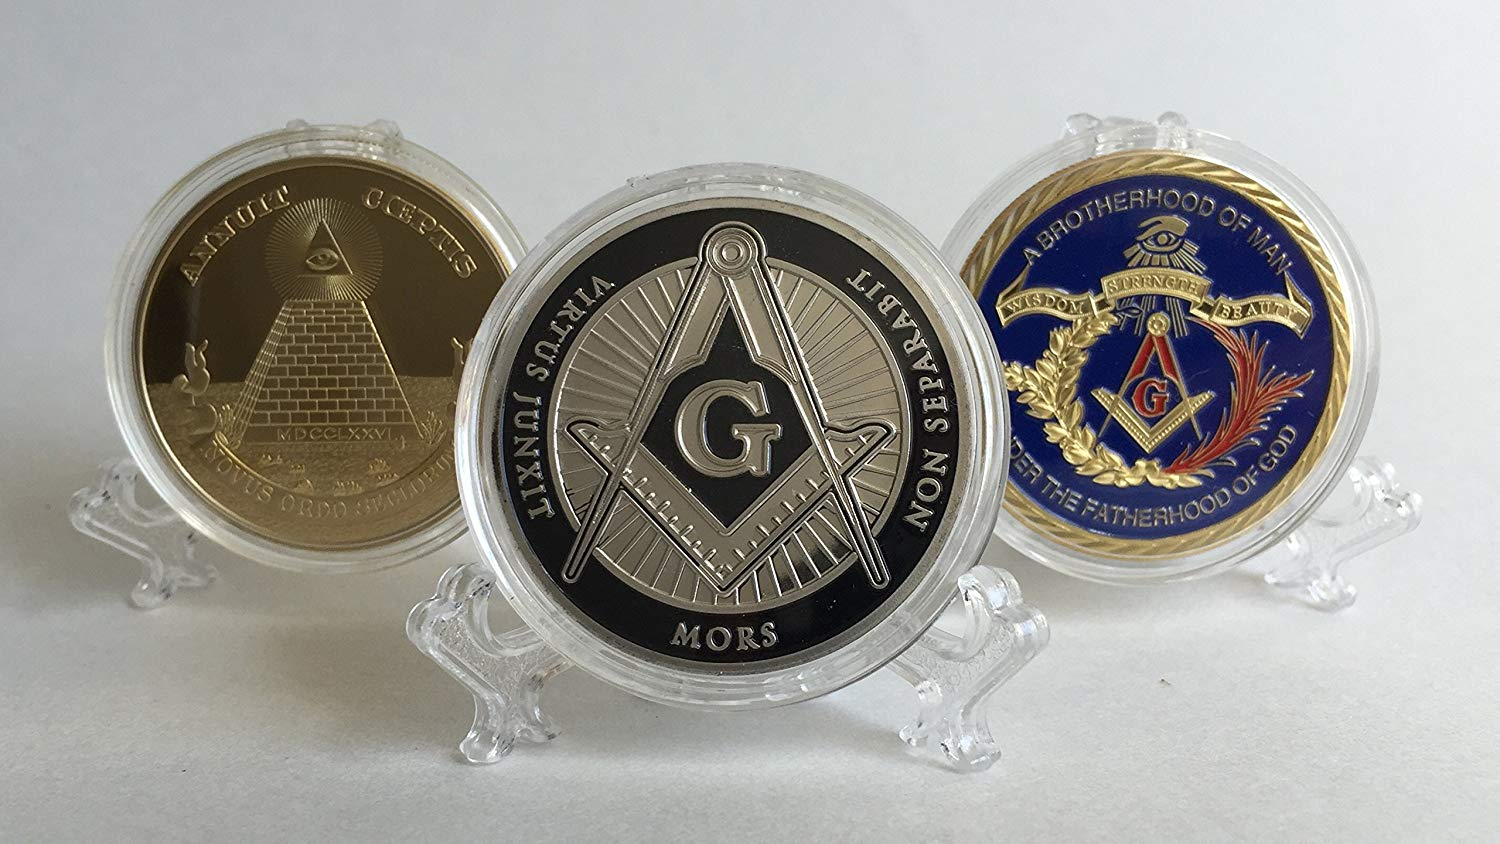 Set of 3 (1 silver, 2 gold color with color) Freemason Collectible Challenge Coins plus free sticker by Lucky Donk, Poker Card Guard, Golf Ball Marker, paperweight